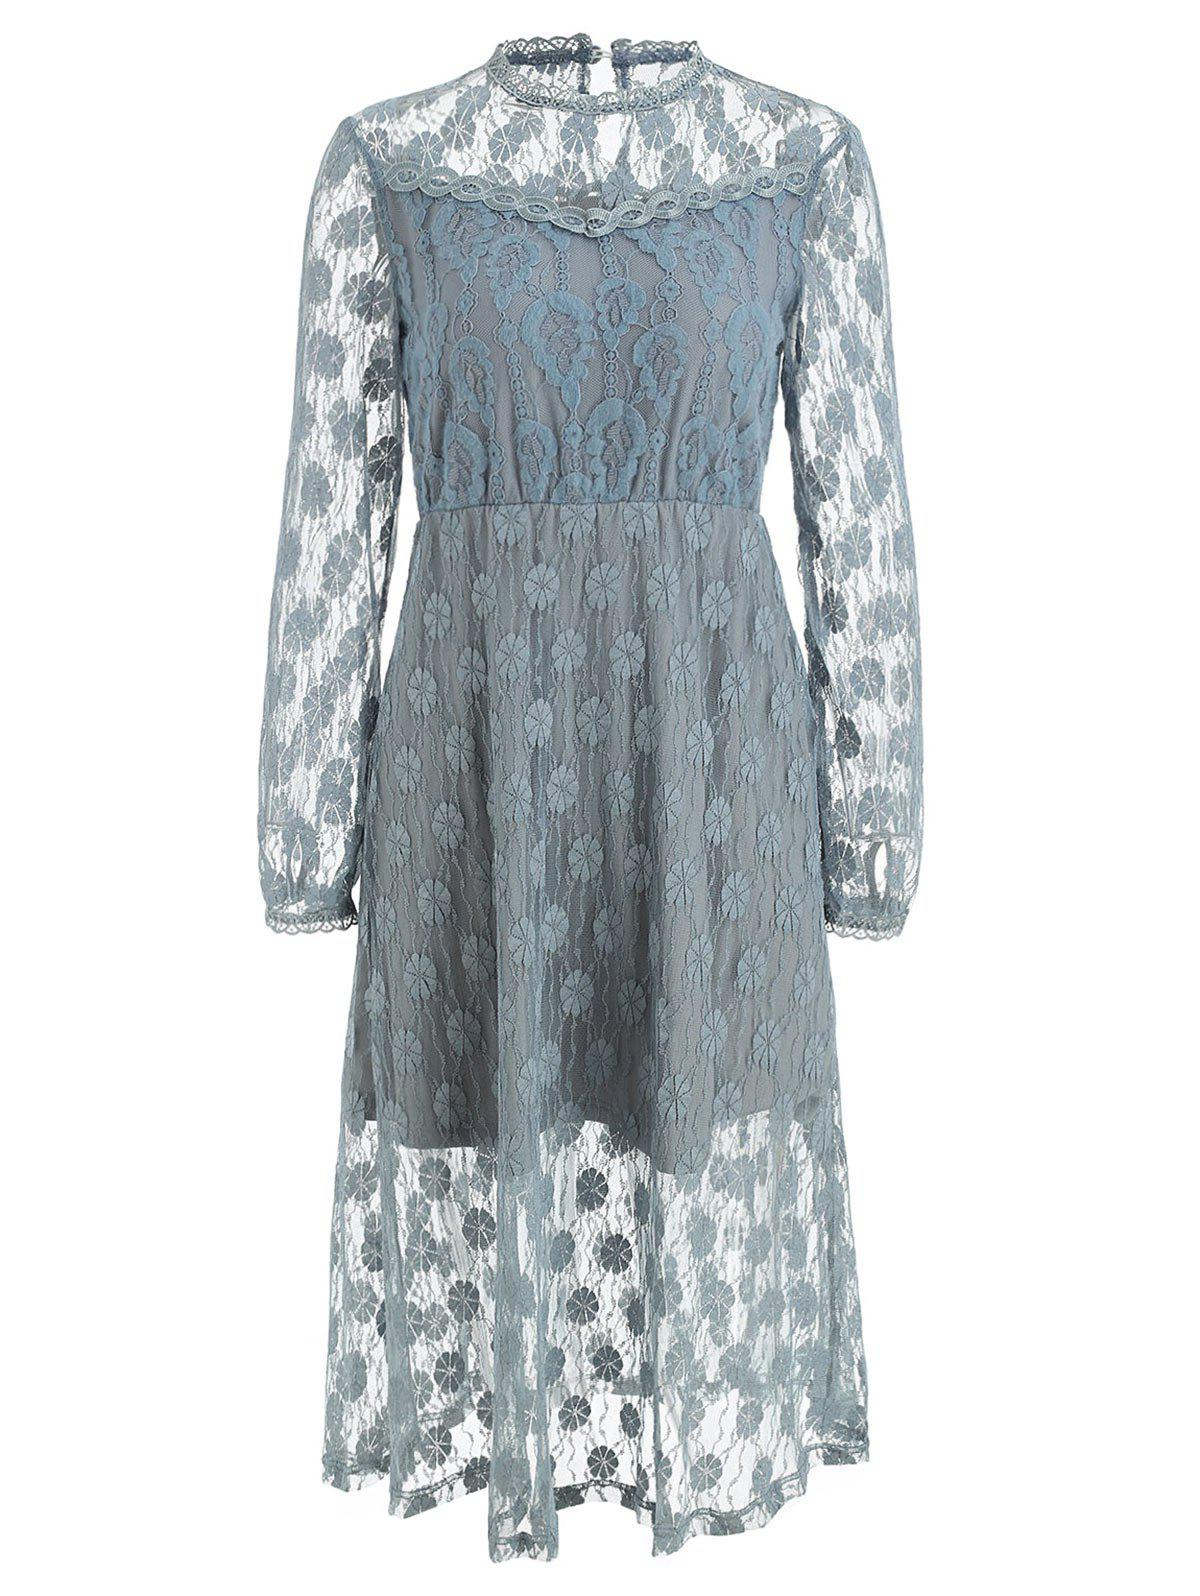 Affordable Full Sleeve Floral Lace Dress